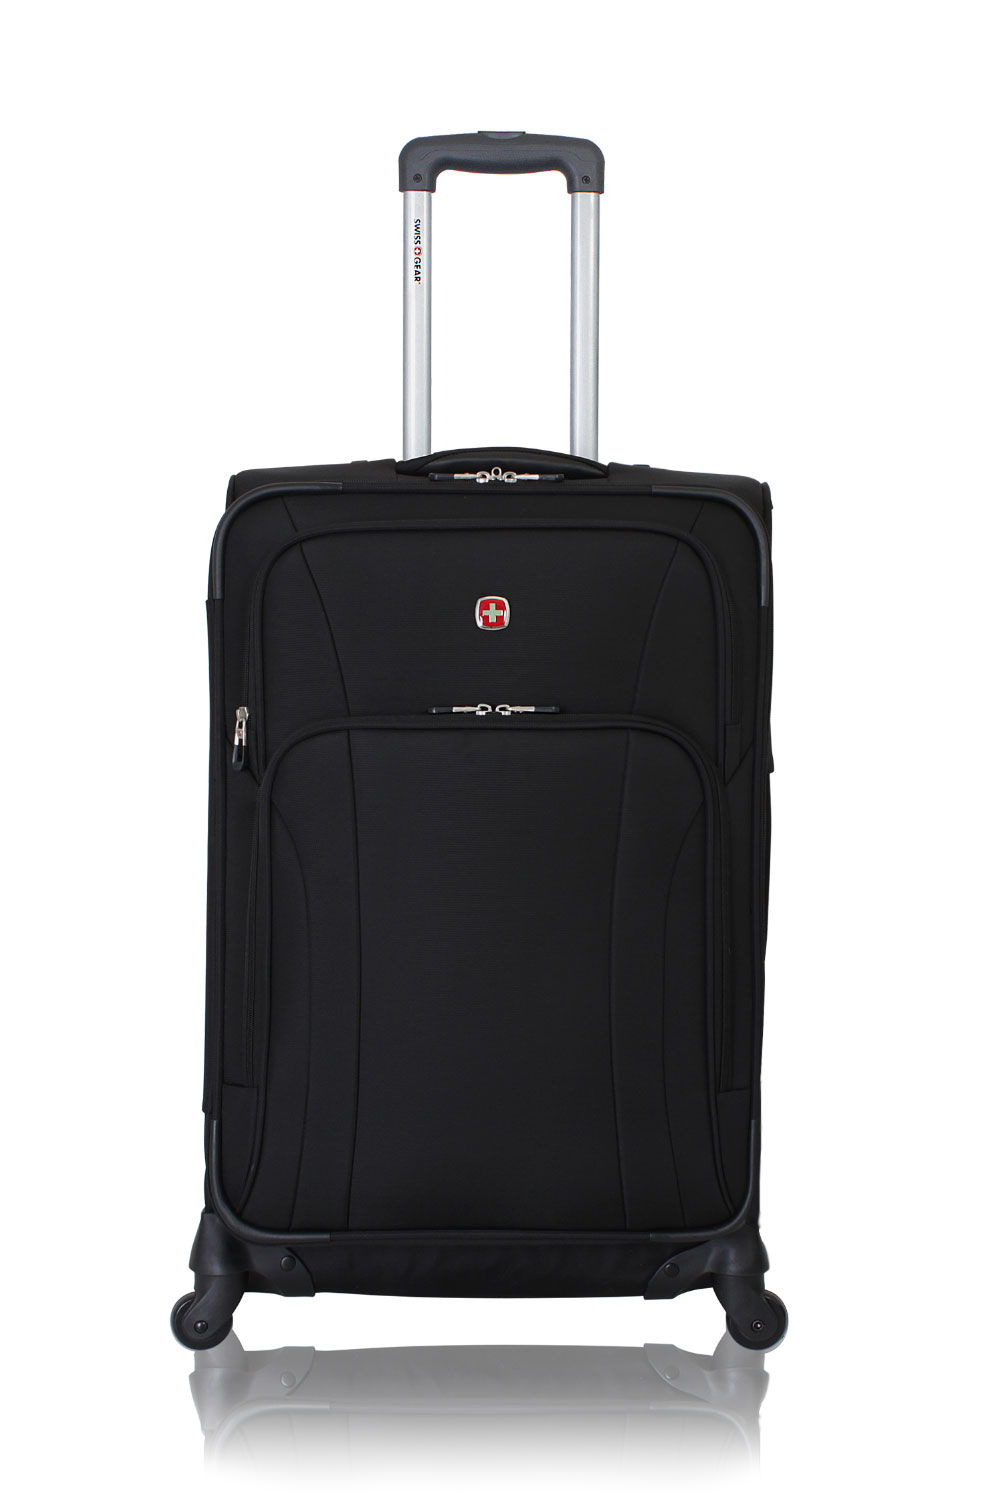 "SWISSGEAR 7387 24"" Expandable Spinner - Black Luggage"